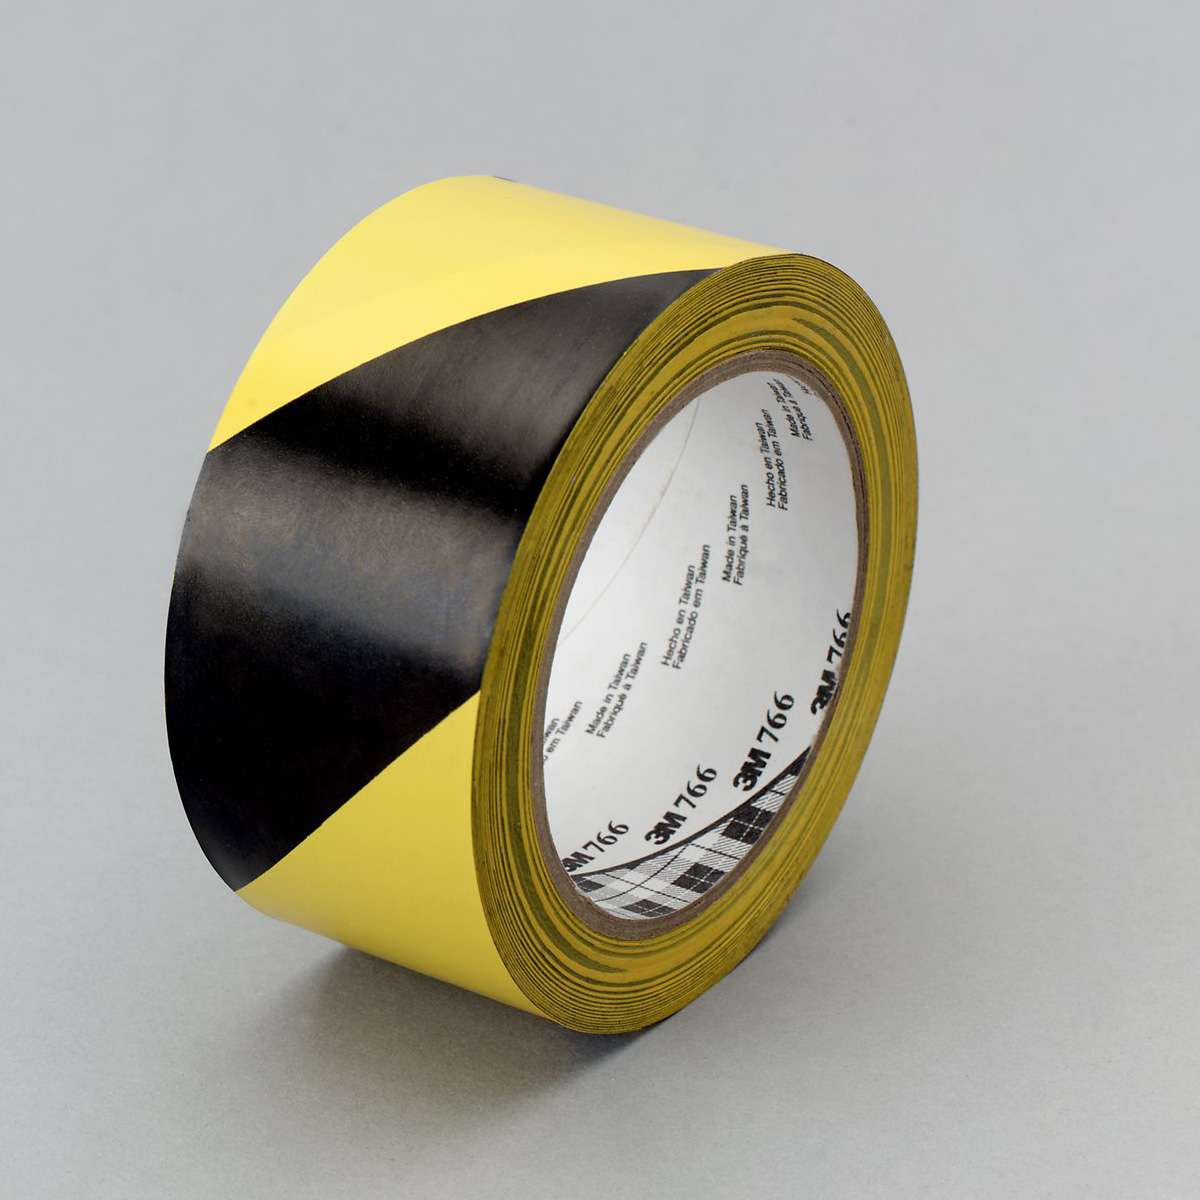 Marking tape 3M 766i, economy, 50mmx33m, yellow/black